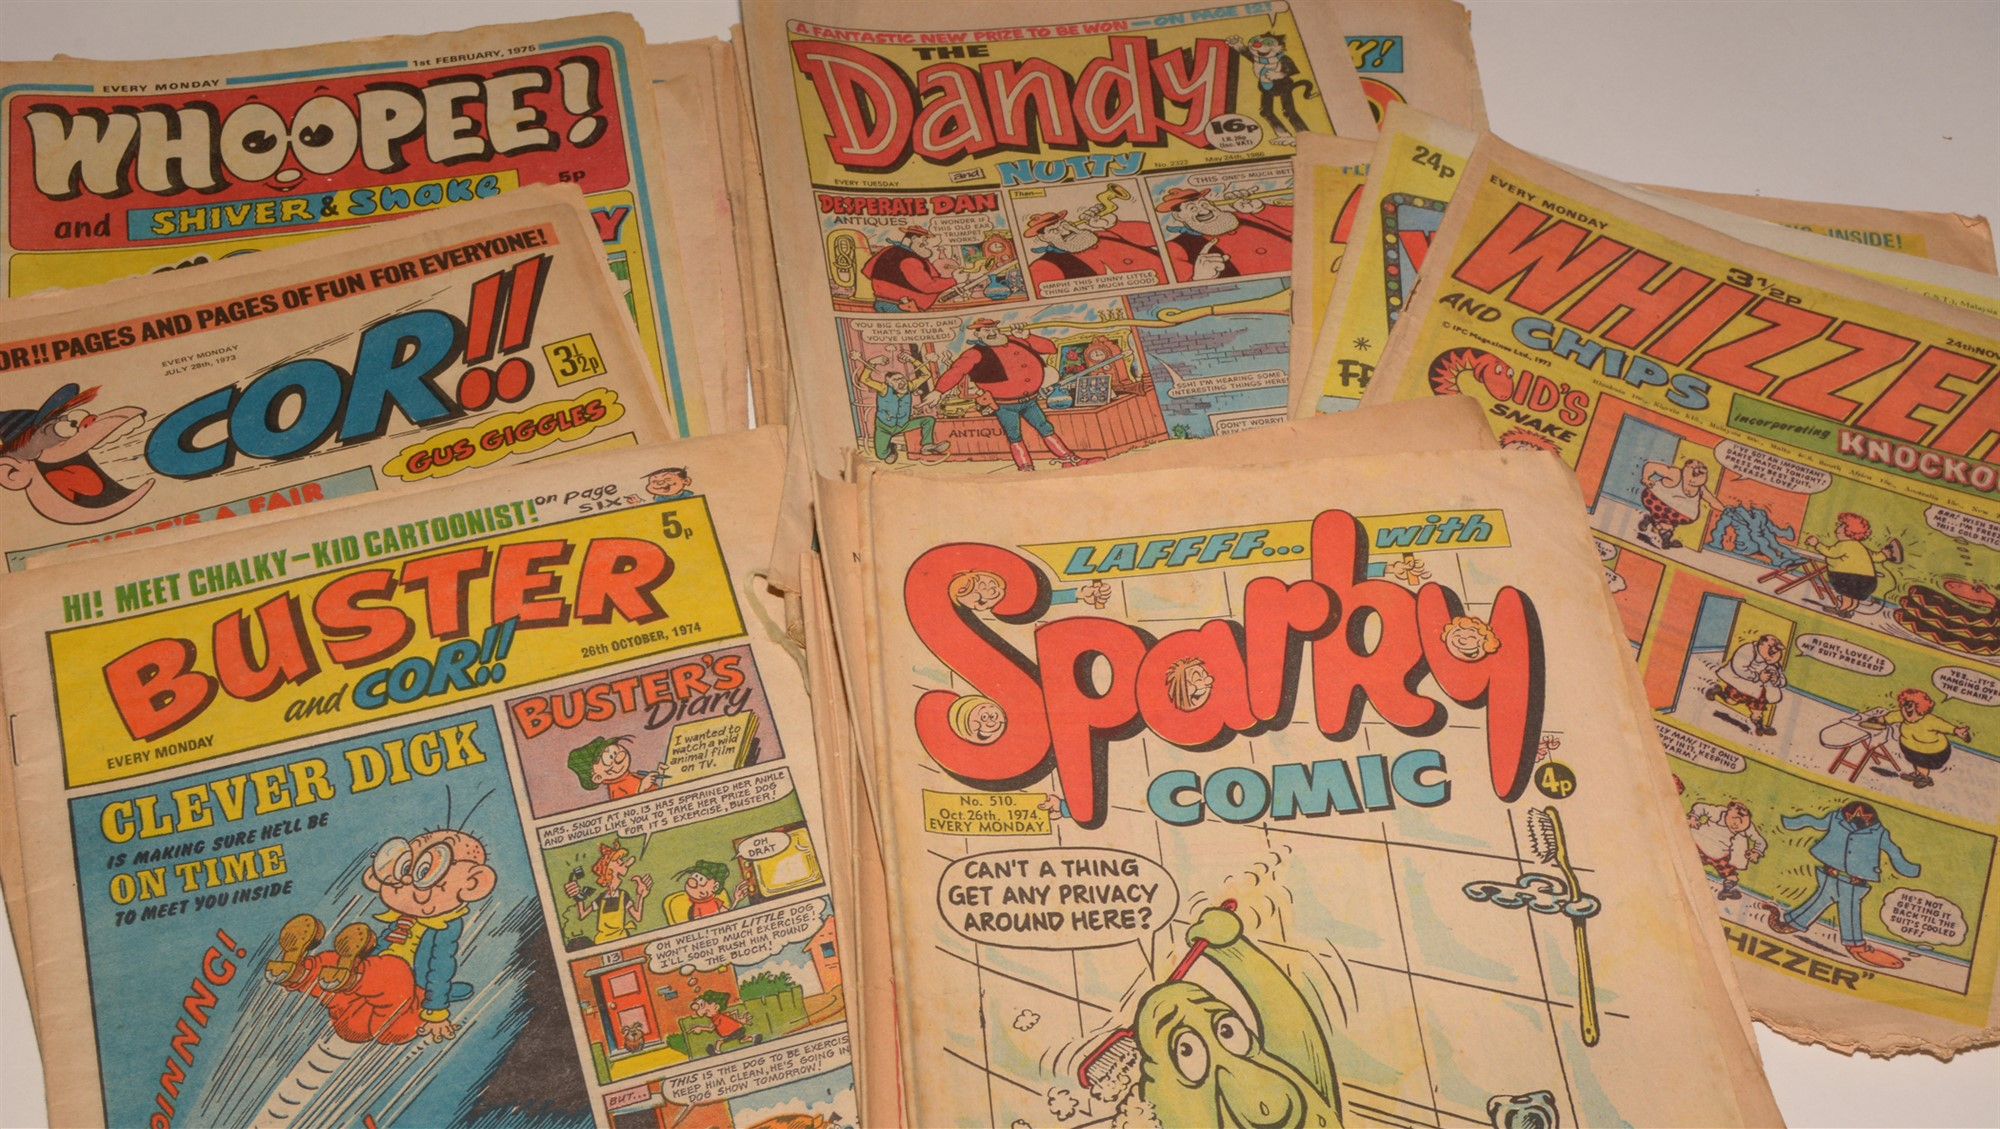 The Beezer, The Topper and Buzz sundry 1970's issues and Holiday Specials, Whizzer and Chips, - Image 2 of 3